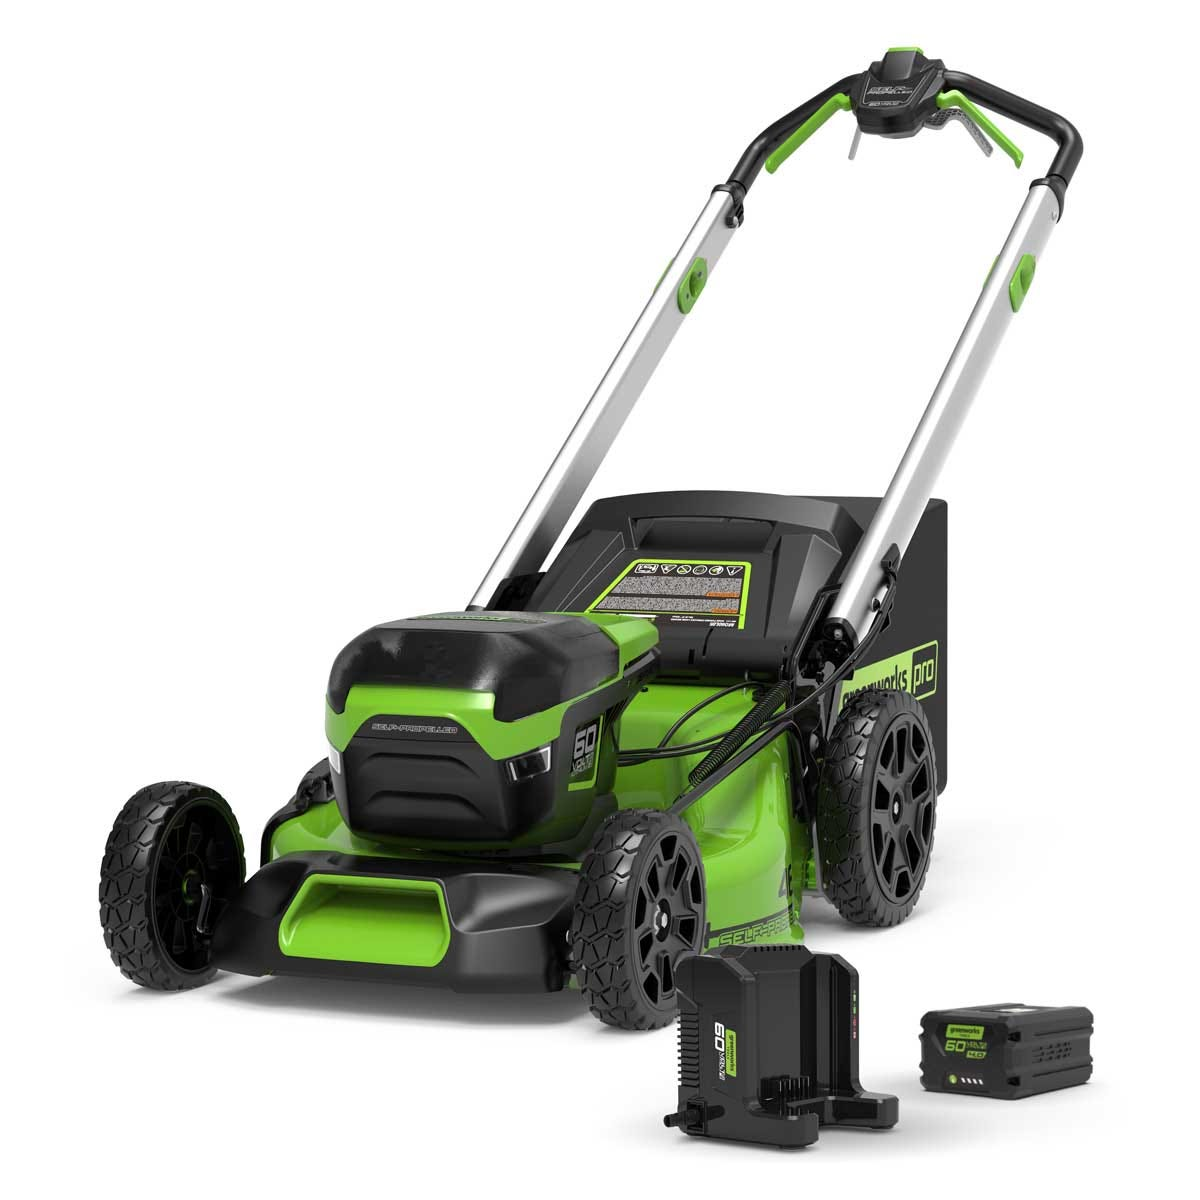 Greenworks 60v Cordless 46cm Brushless Self Propelled Lawn Mower with 4Ah Battery and Charger